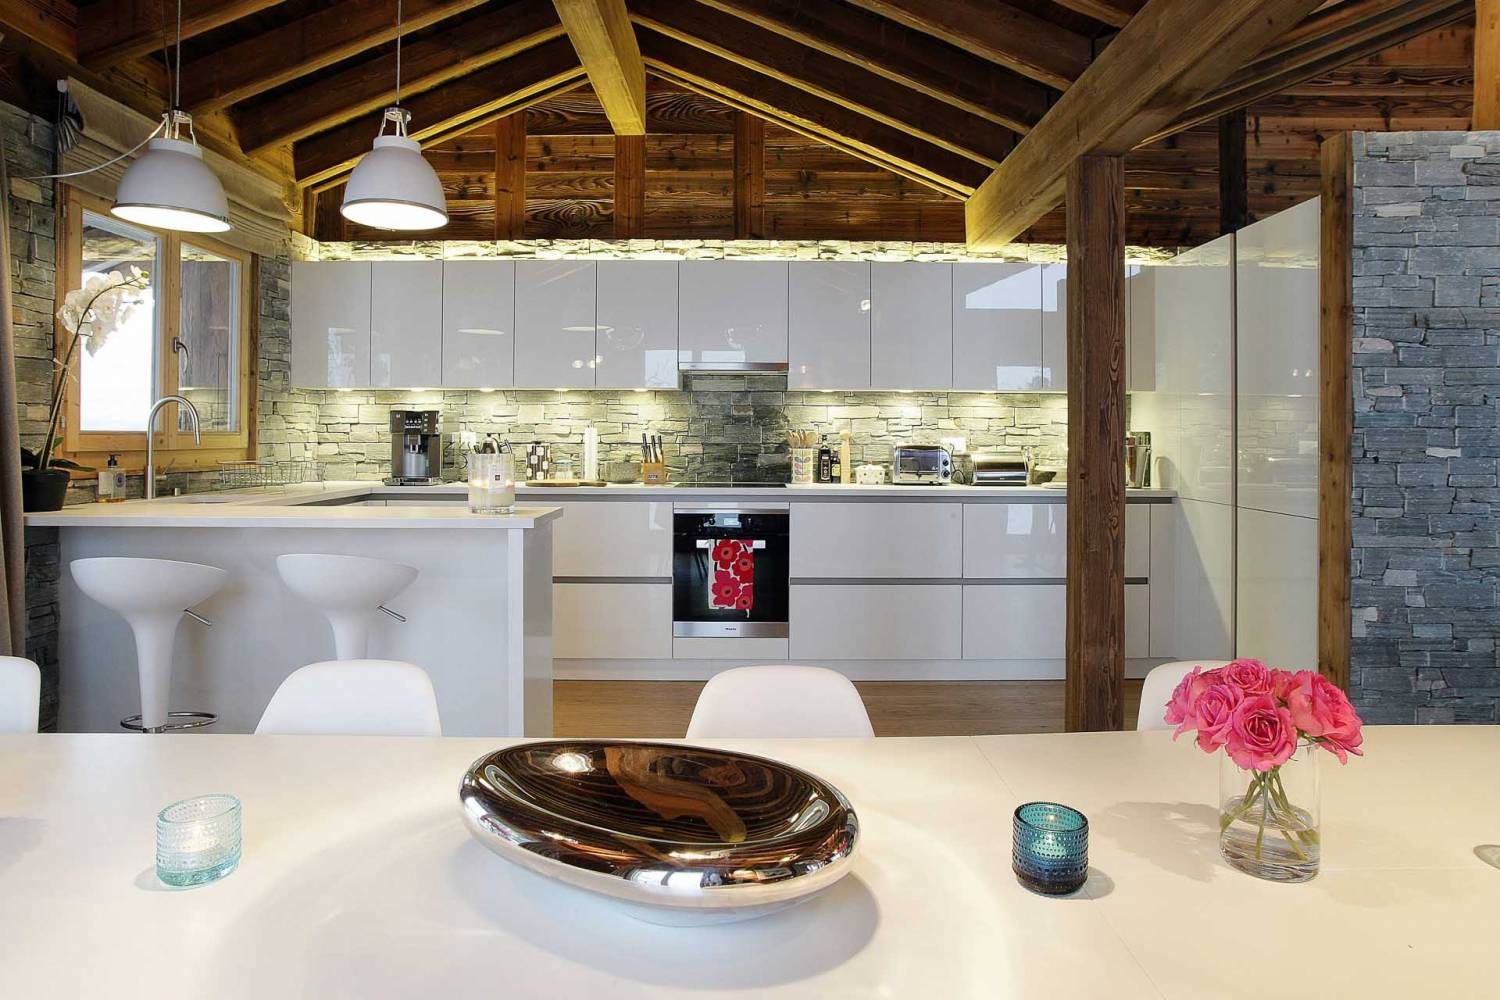 Amazing kitchen for a private chef in Big Bear - Take a Chef, header